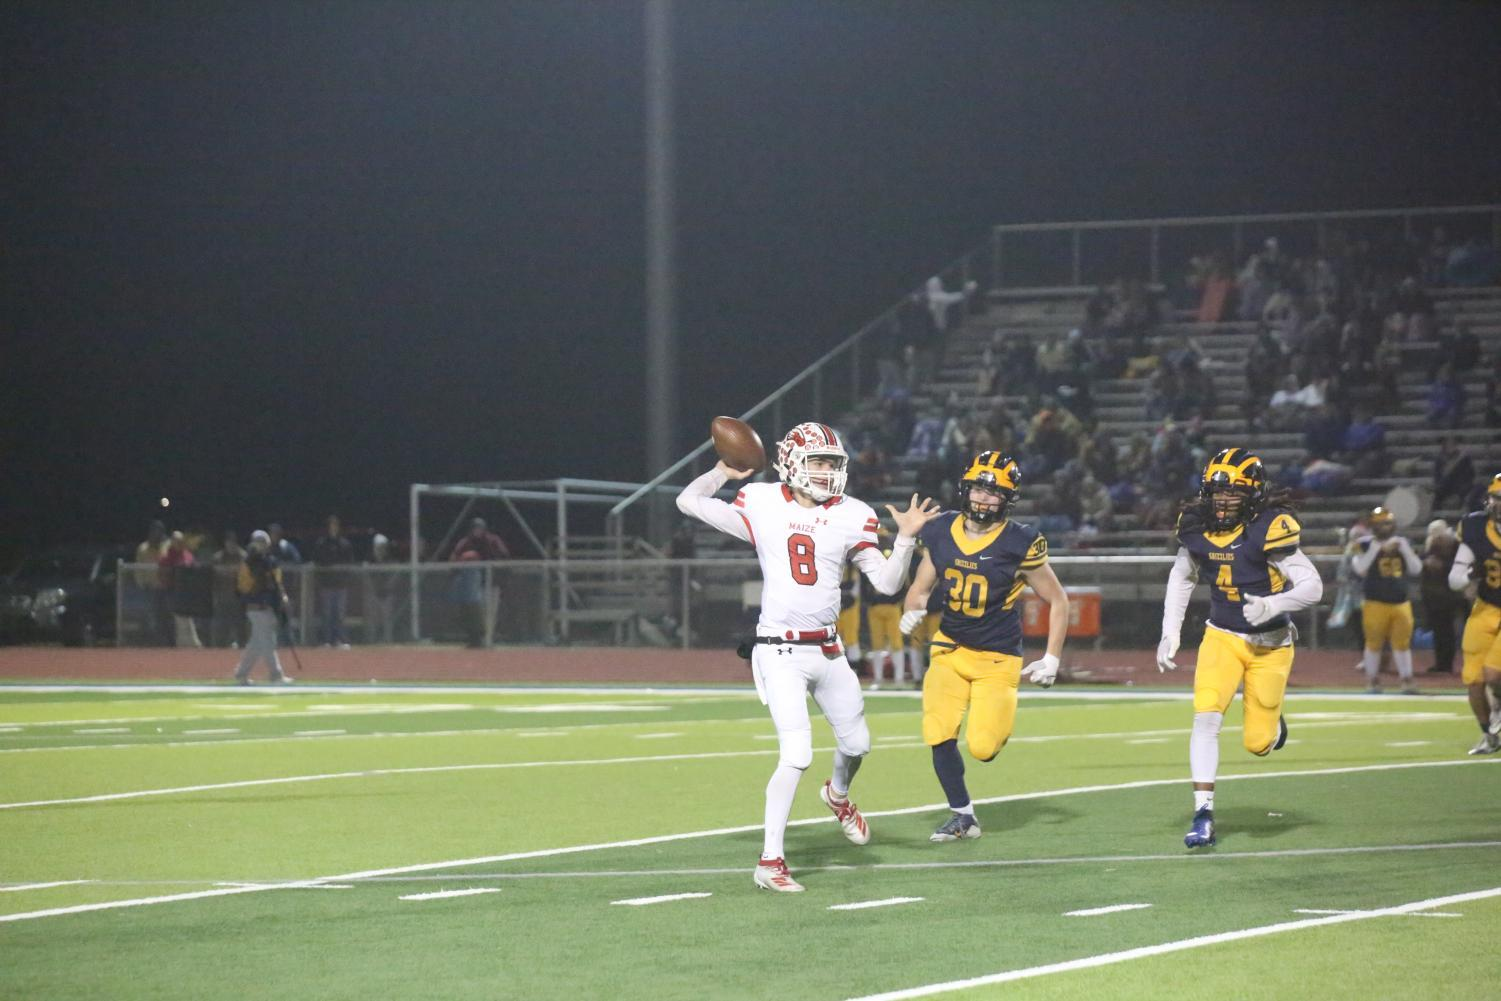 Senior Camden Jurgensen throws a pass to a receiver. Jurgensen scored three touchdowns during the game.